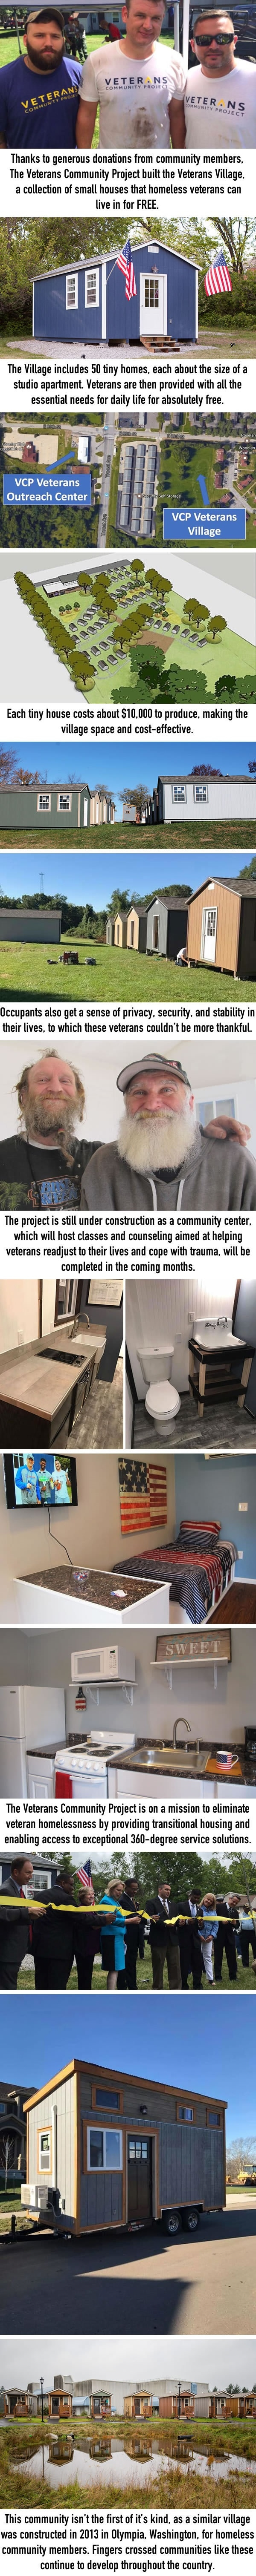 City builds tiny village for homeless veterans